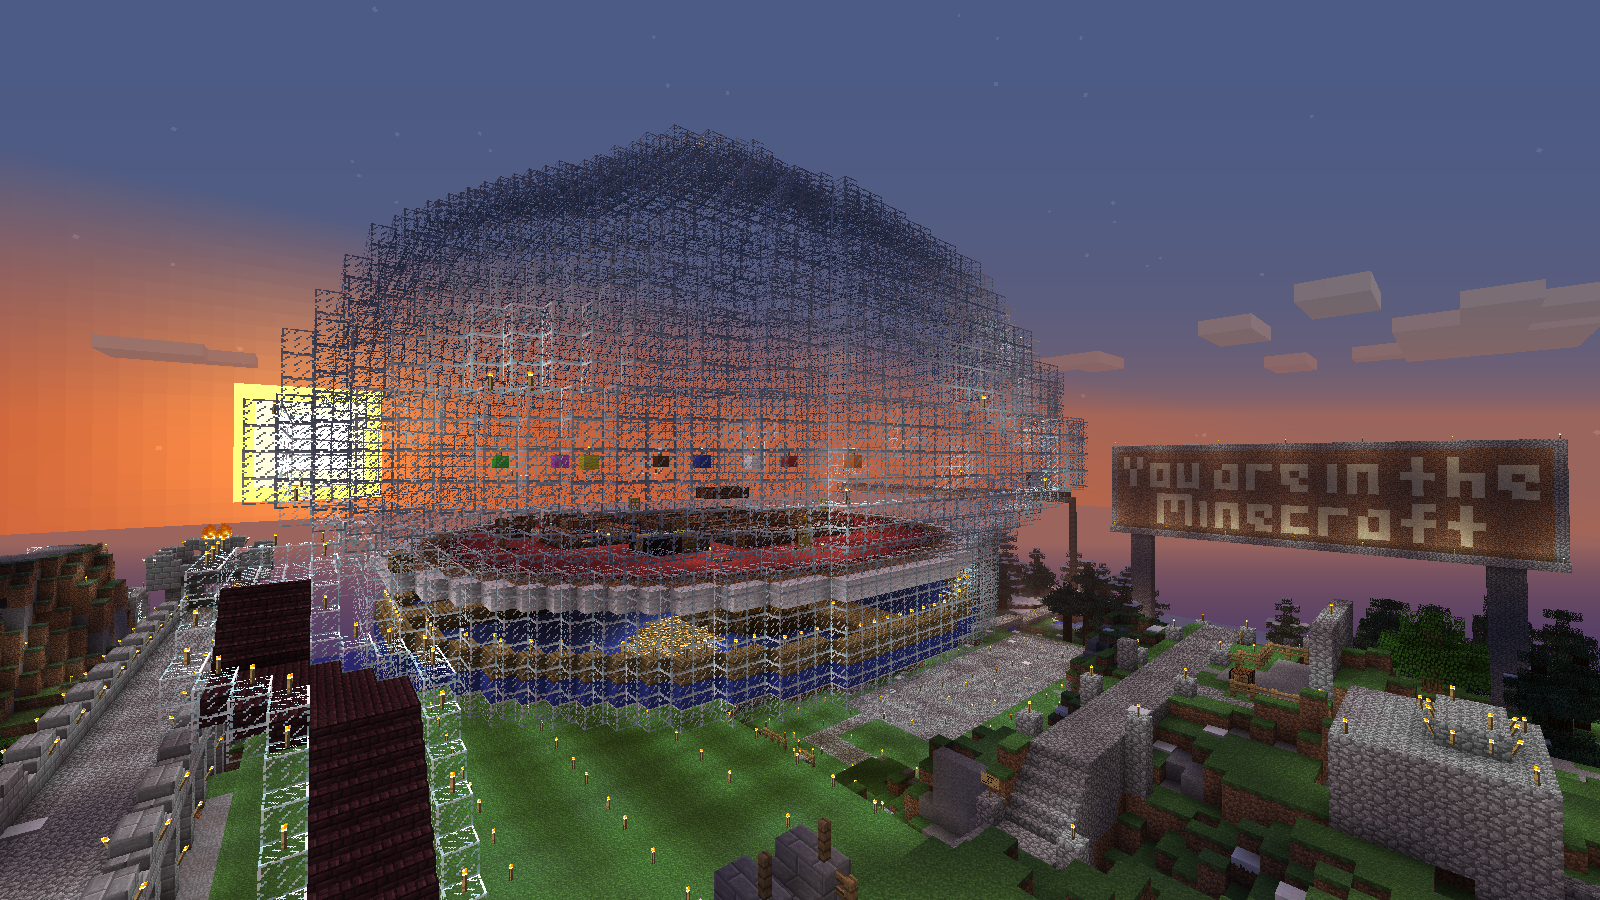 Enderman Arena of Music from outside